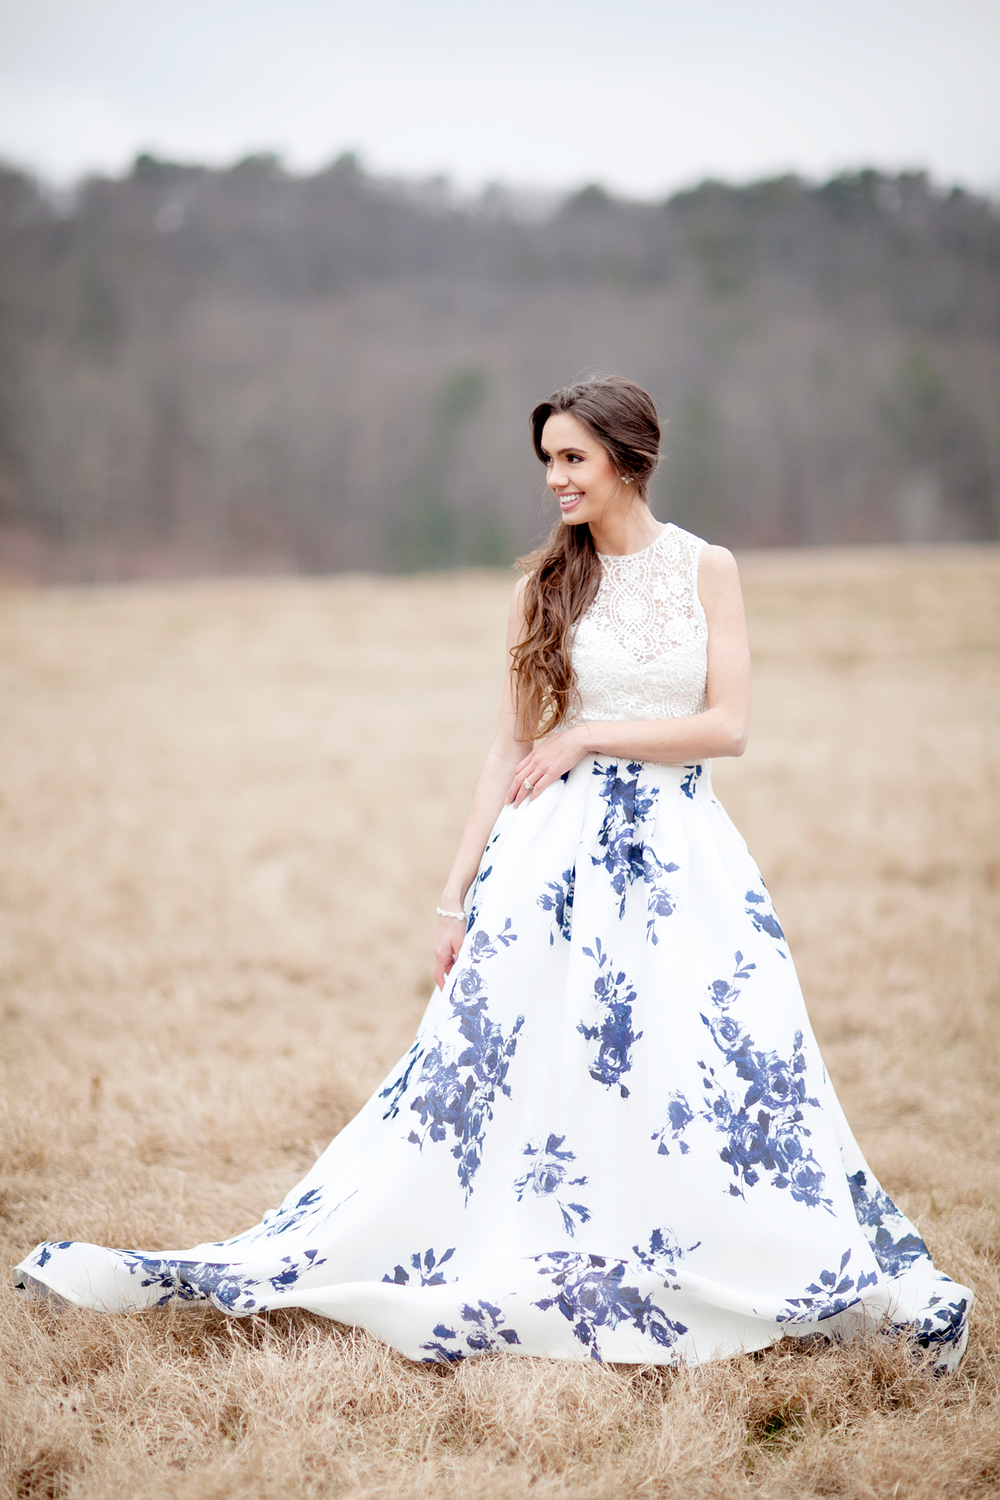 A gorgeous styled shoot featuring a floral gown. Photography by Sleepy Fox Photography.